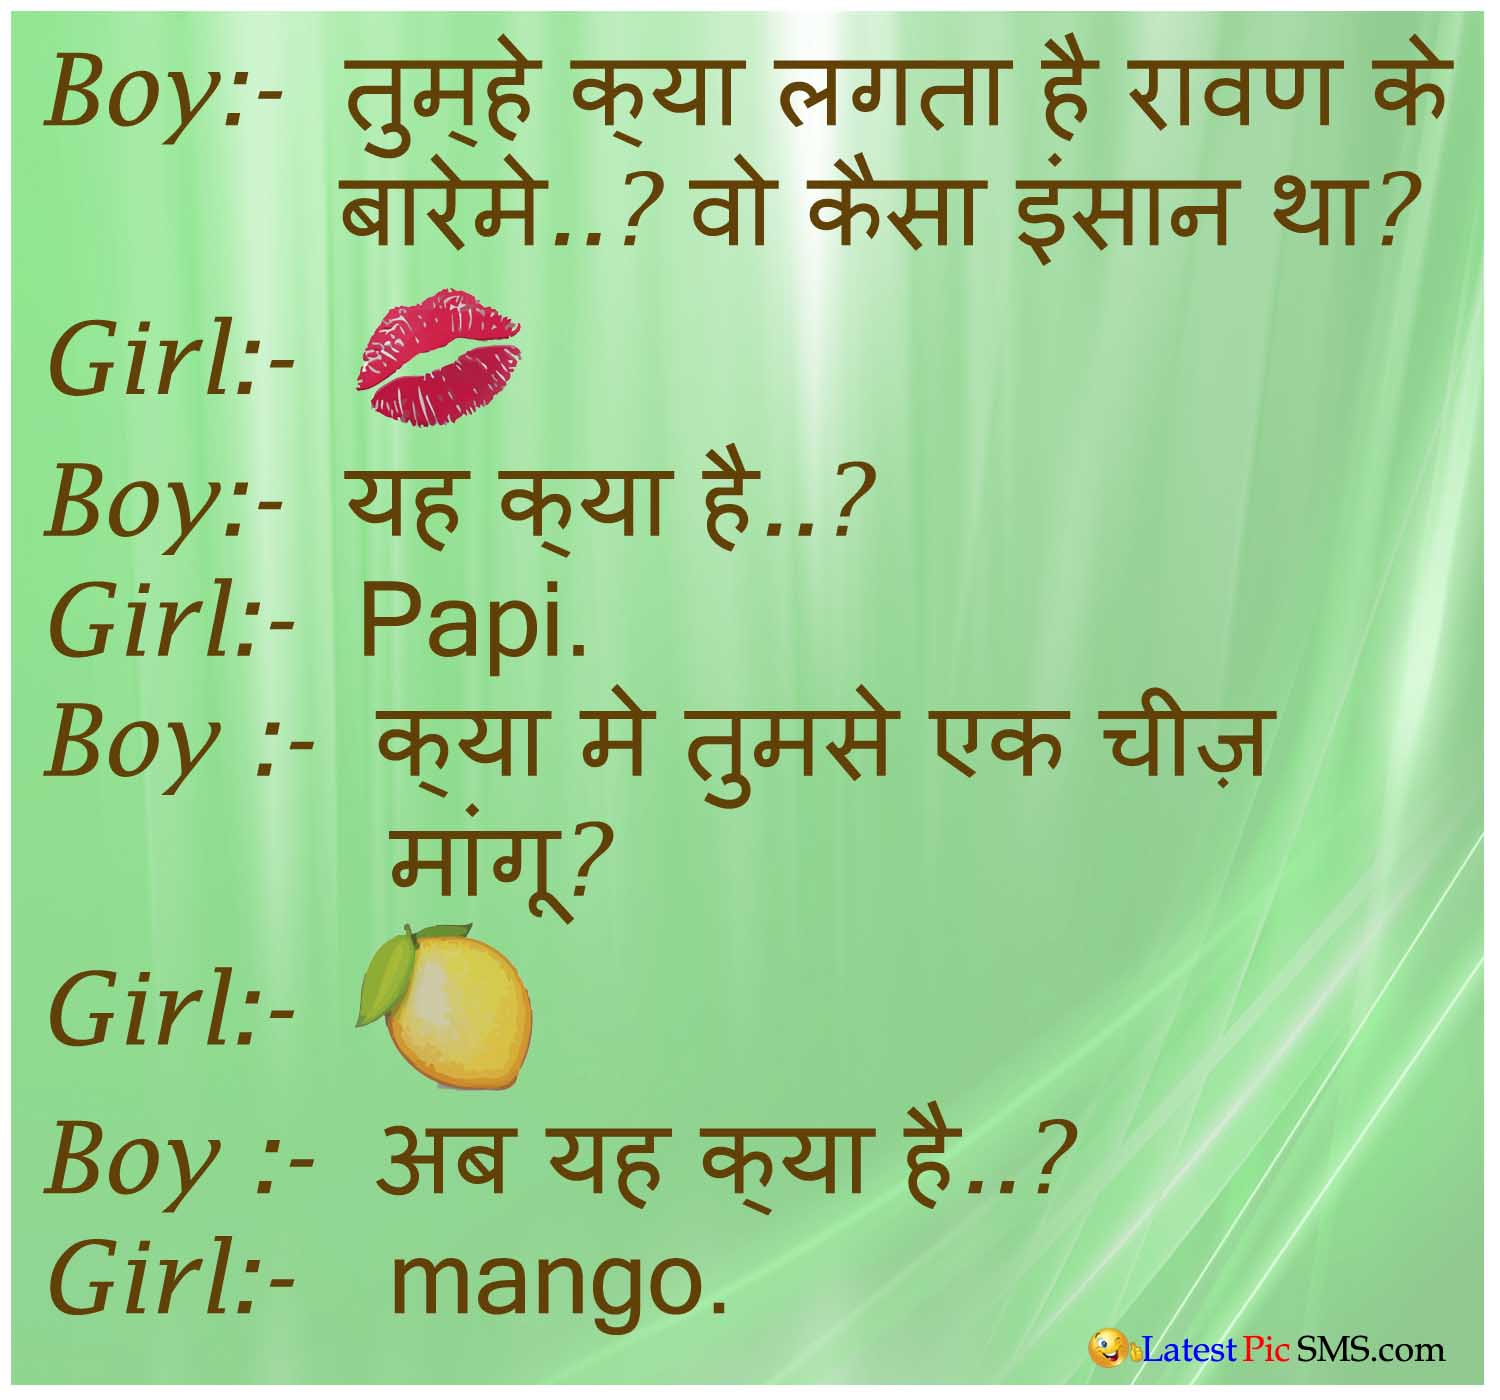 Girl Boy Whatsapp Jokes Jokeyhee